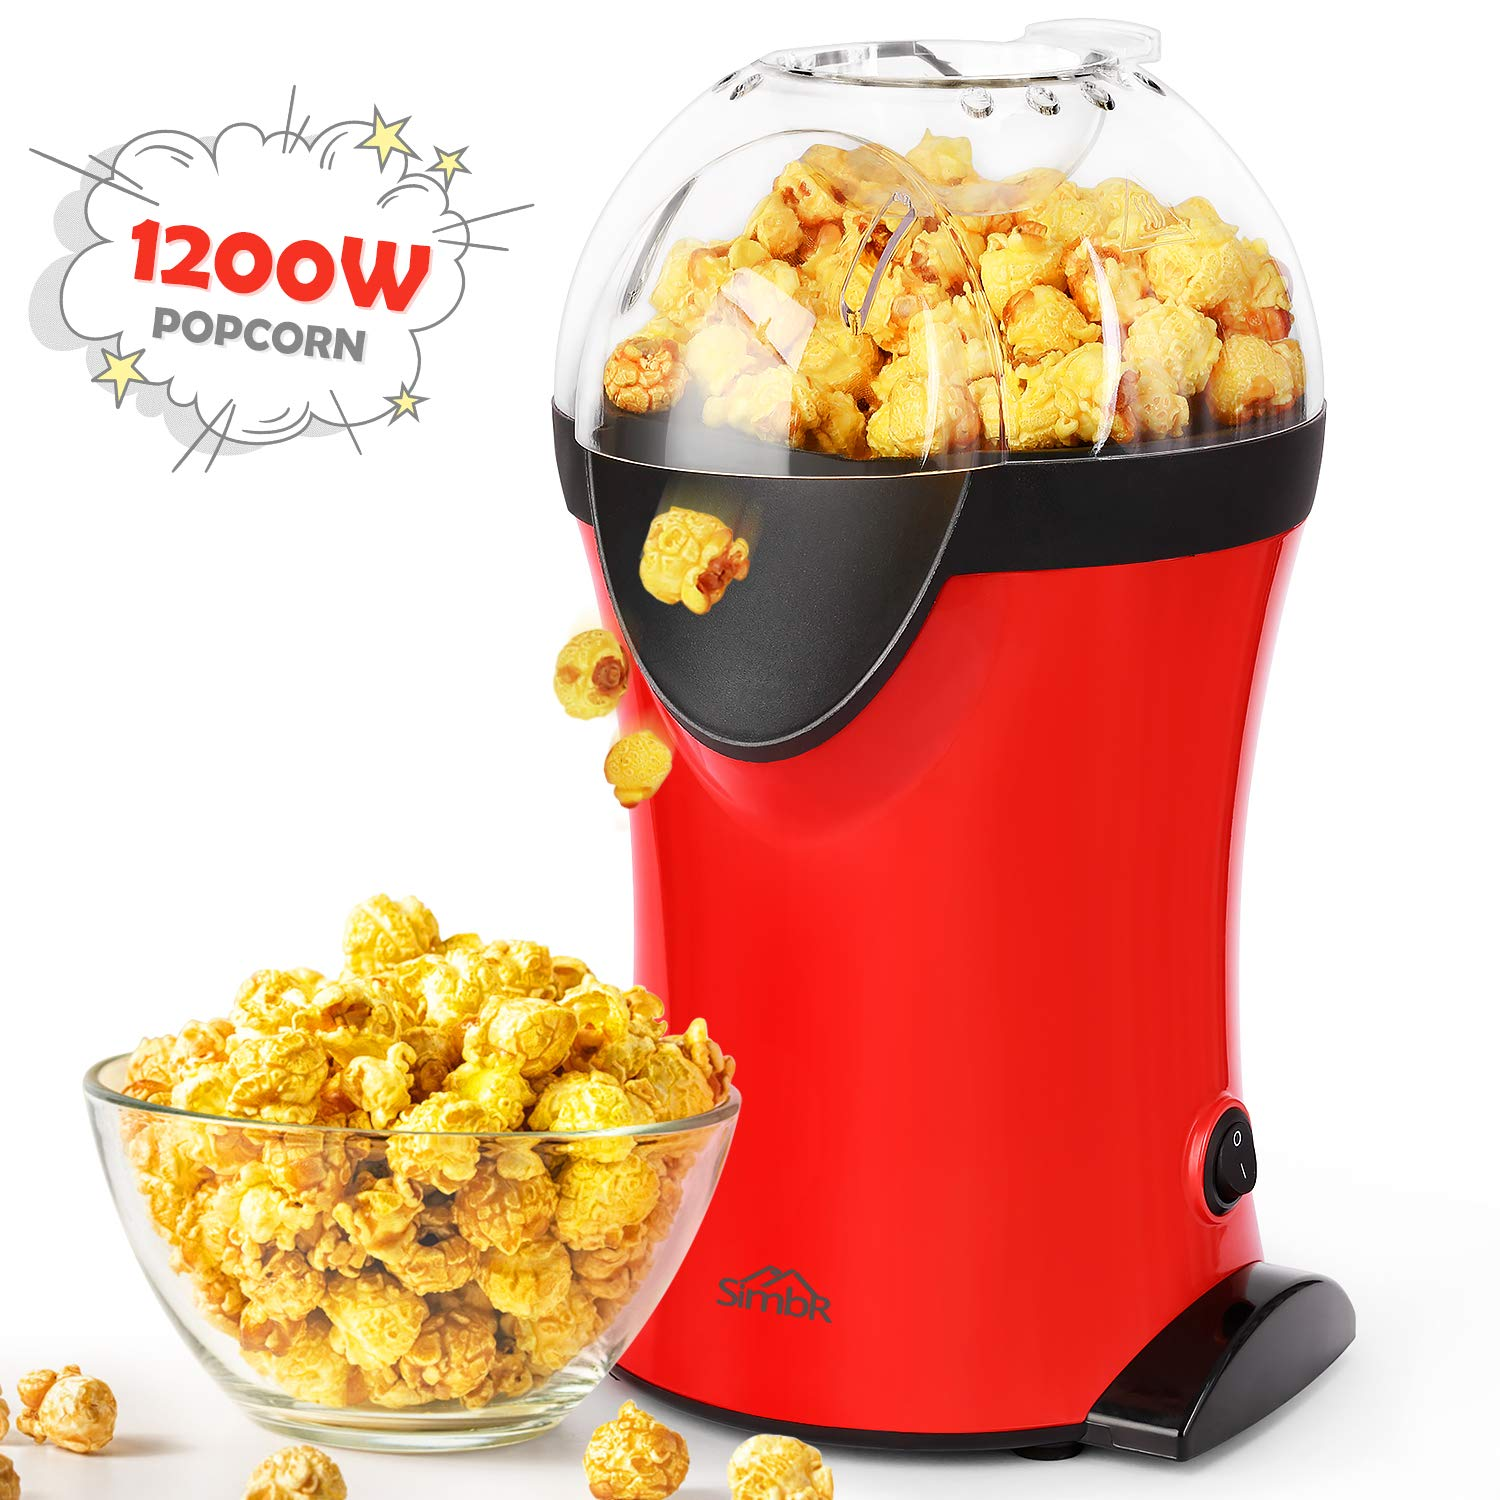 Popcorn Popper, SIMBR Hot Air Popcorn Maker with Measuring Spoon and Large Lid for Serving Bowl and Convenient Storage, 1200W Electric Popcorn Machine, No Oil Need